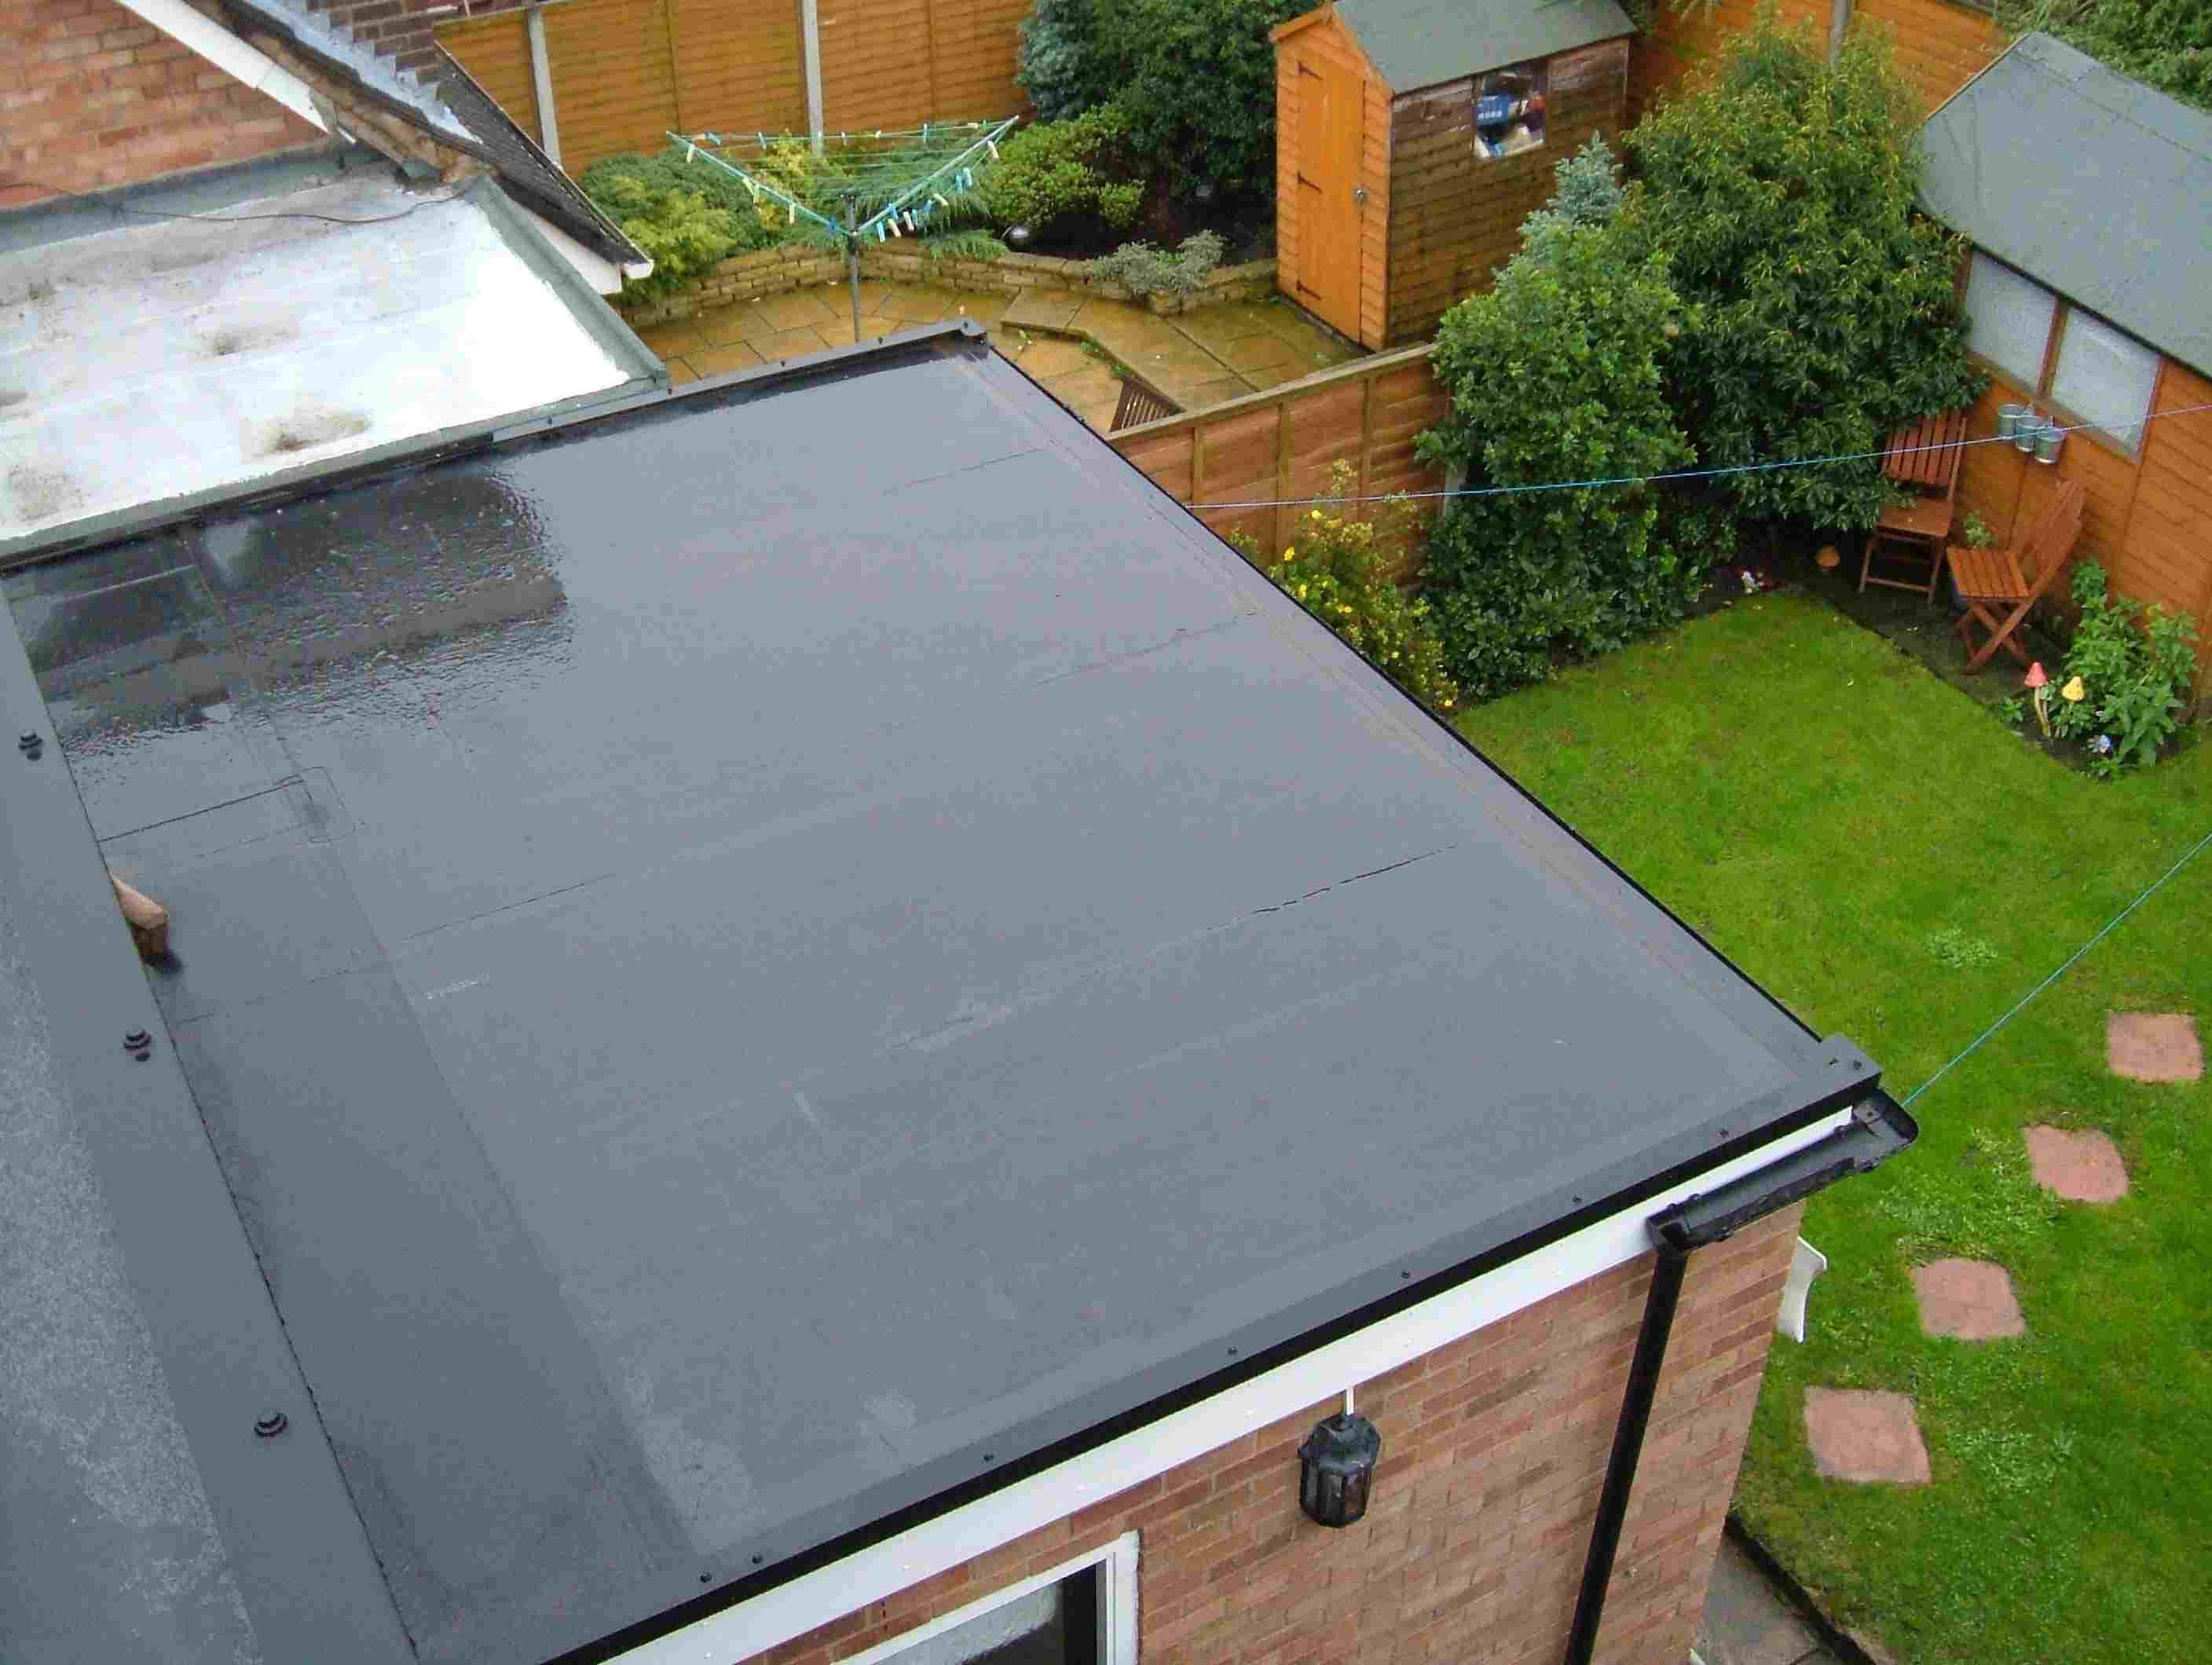 Rubber Roofing Materials For Flat Roofs In 2020 Flat Roof Materials Flat Roof Repair Flat Roof Systems